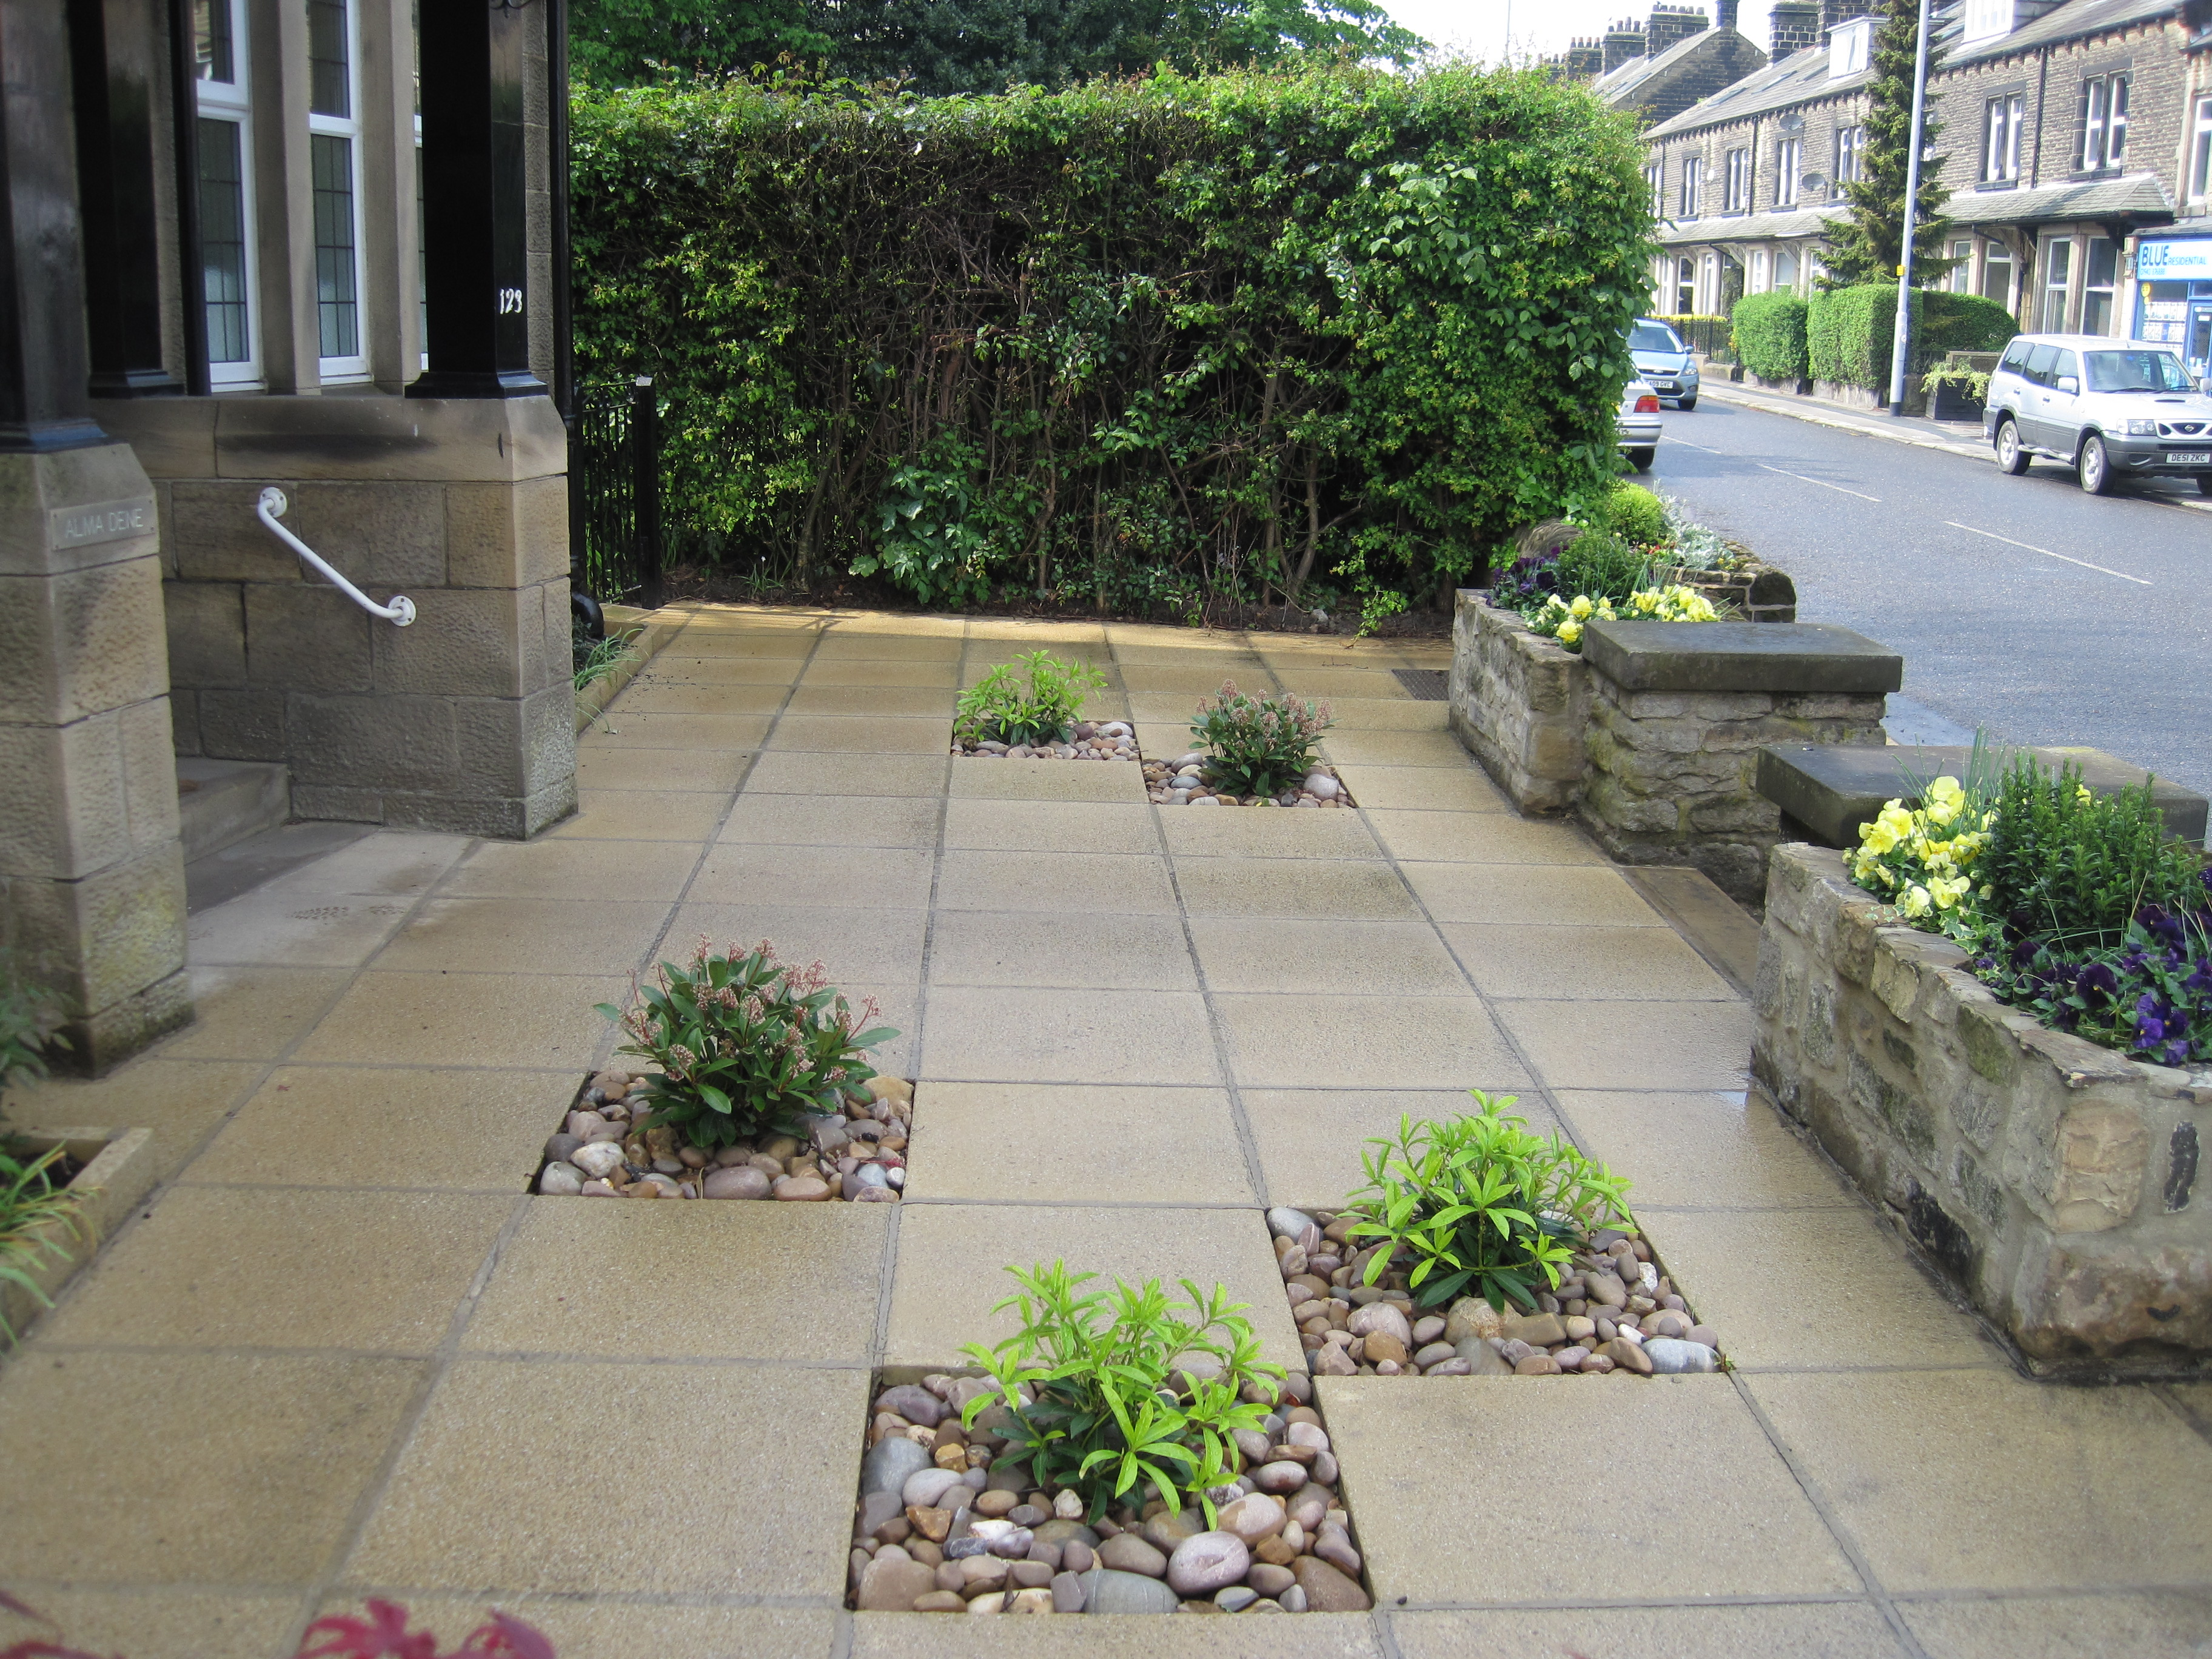 Commercial frontage paving with planting pockets